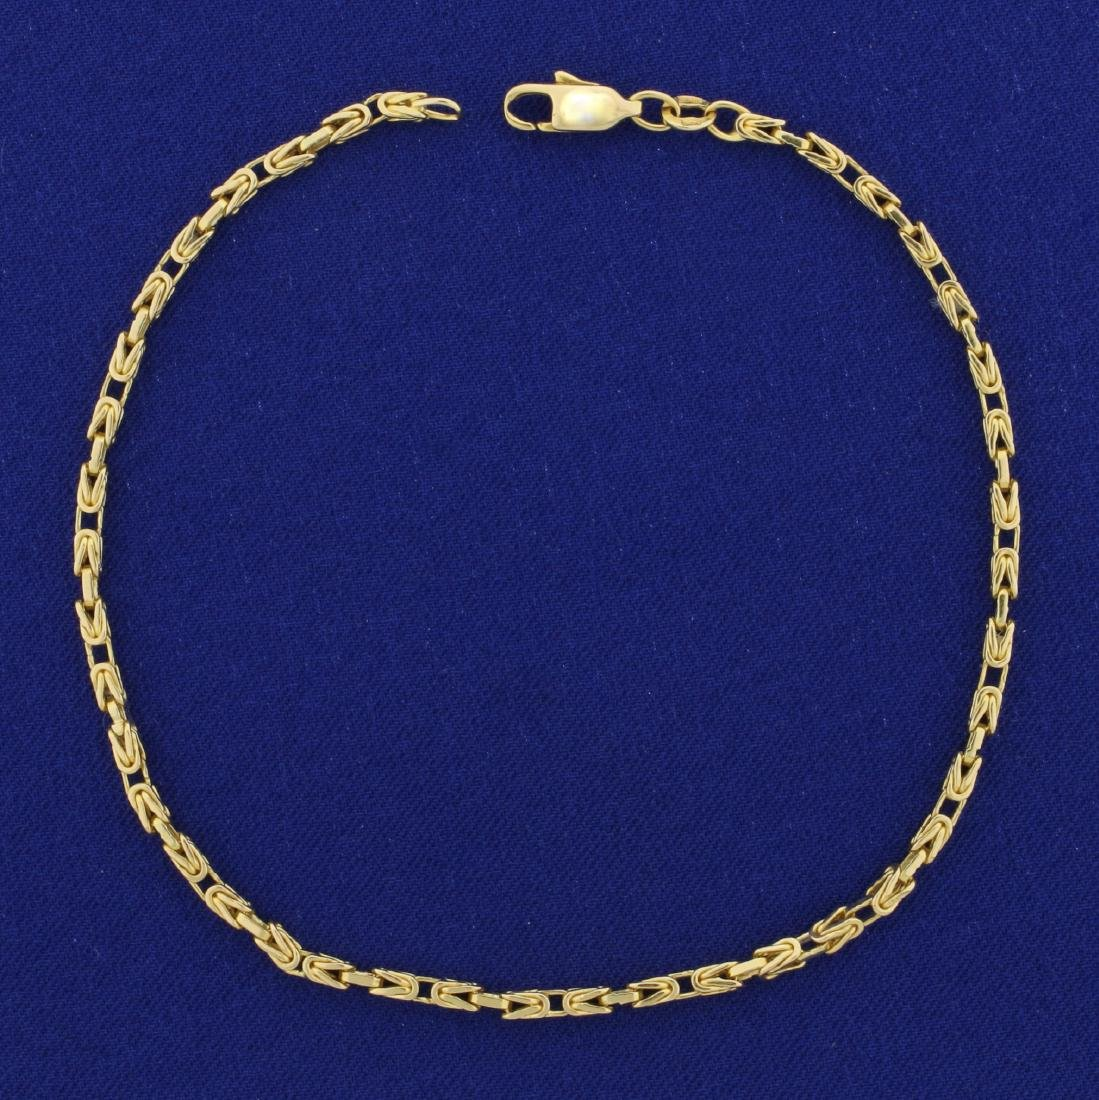 9 3/4 Inch Italian Made Byzantine Link Neck Chain in